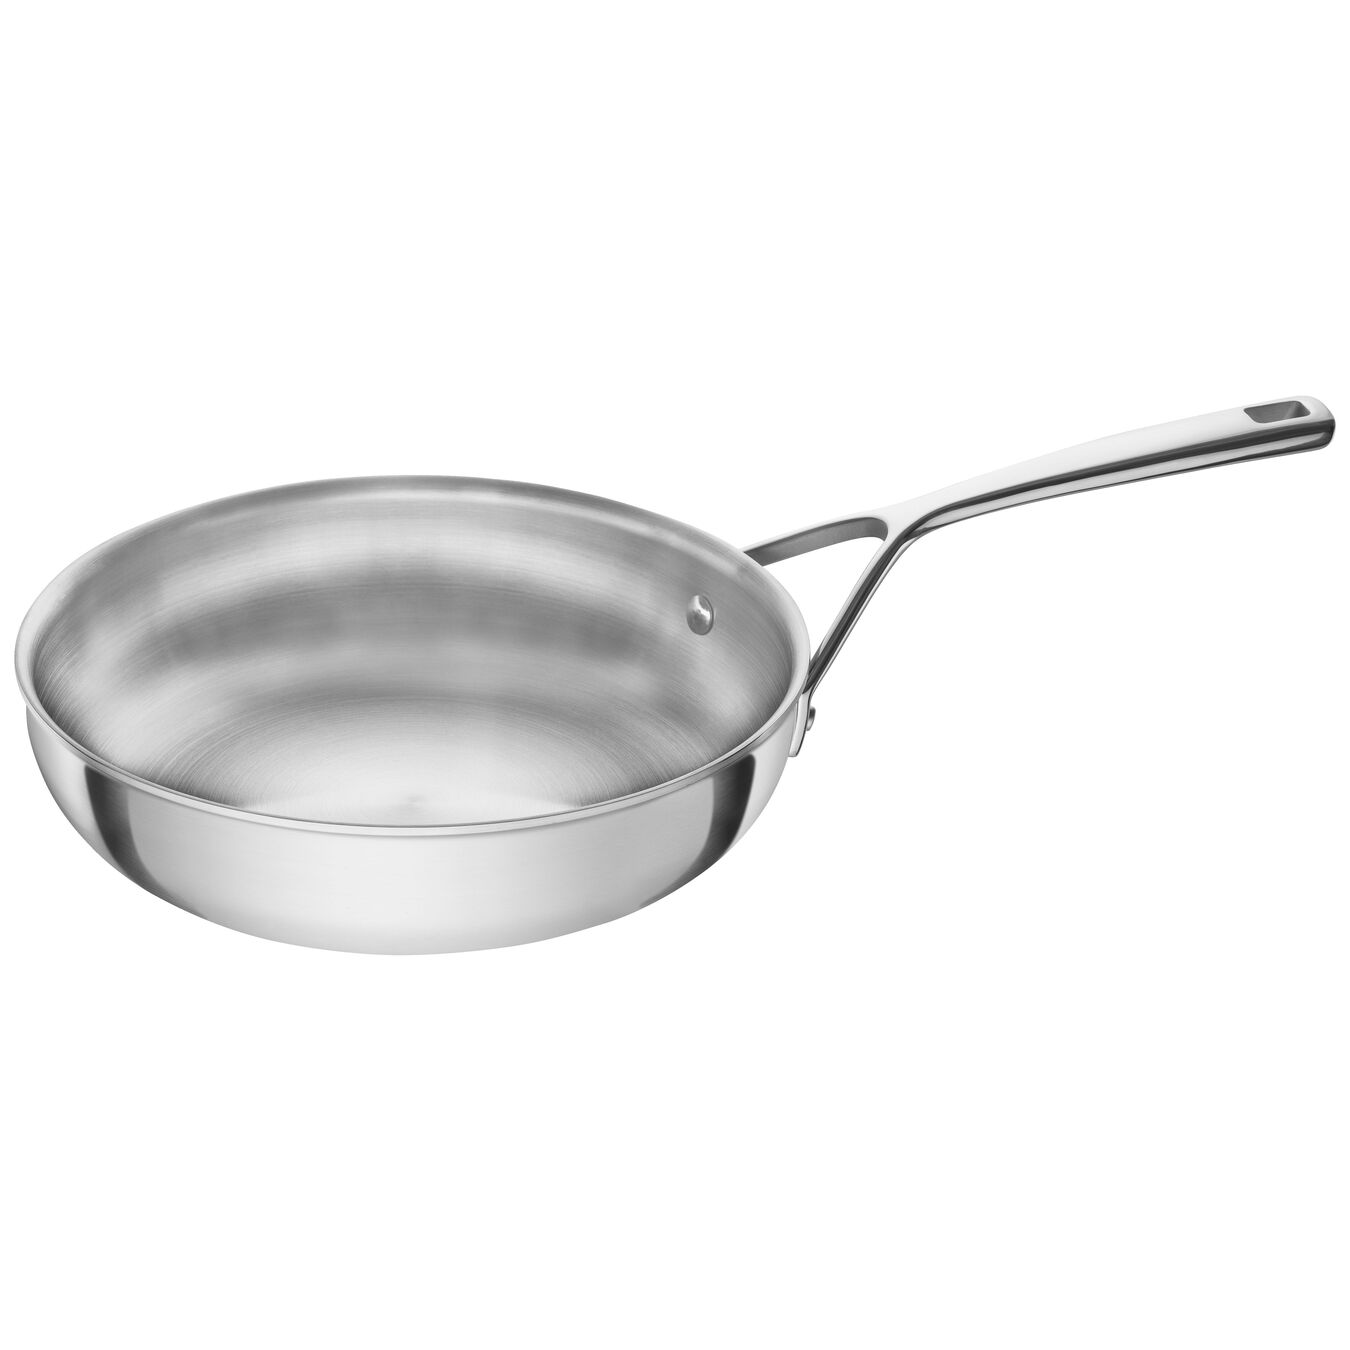 5 Ply, 18/10 Stainless Steel, 9.5-inch, Frying pan,,large 1